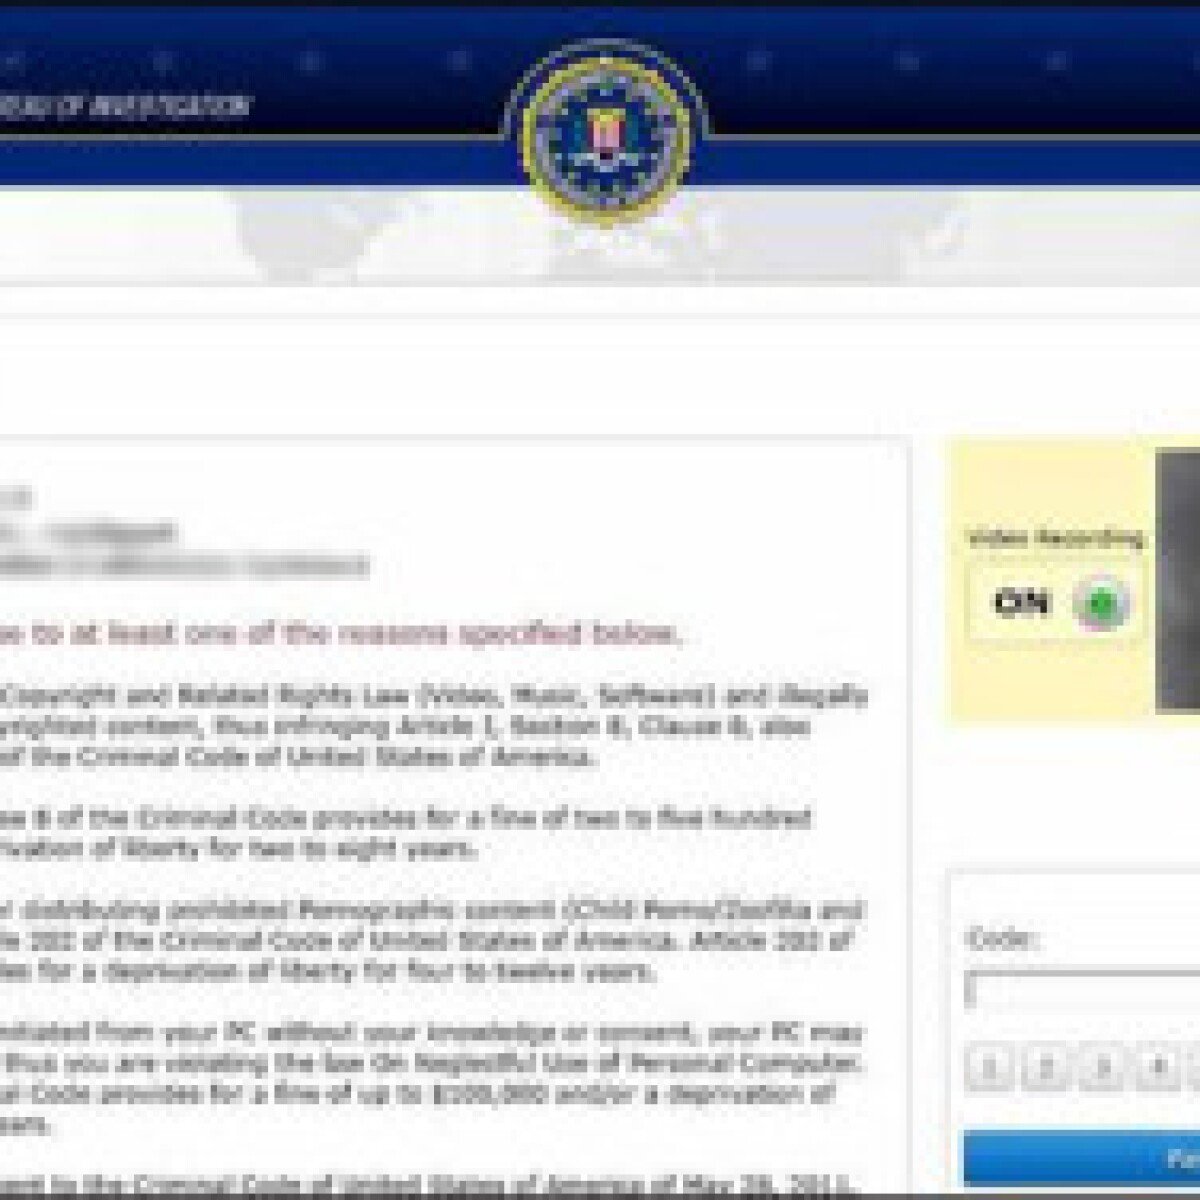 Ransomware Attacking Mac Users, Fake Messages from FBI, IC3